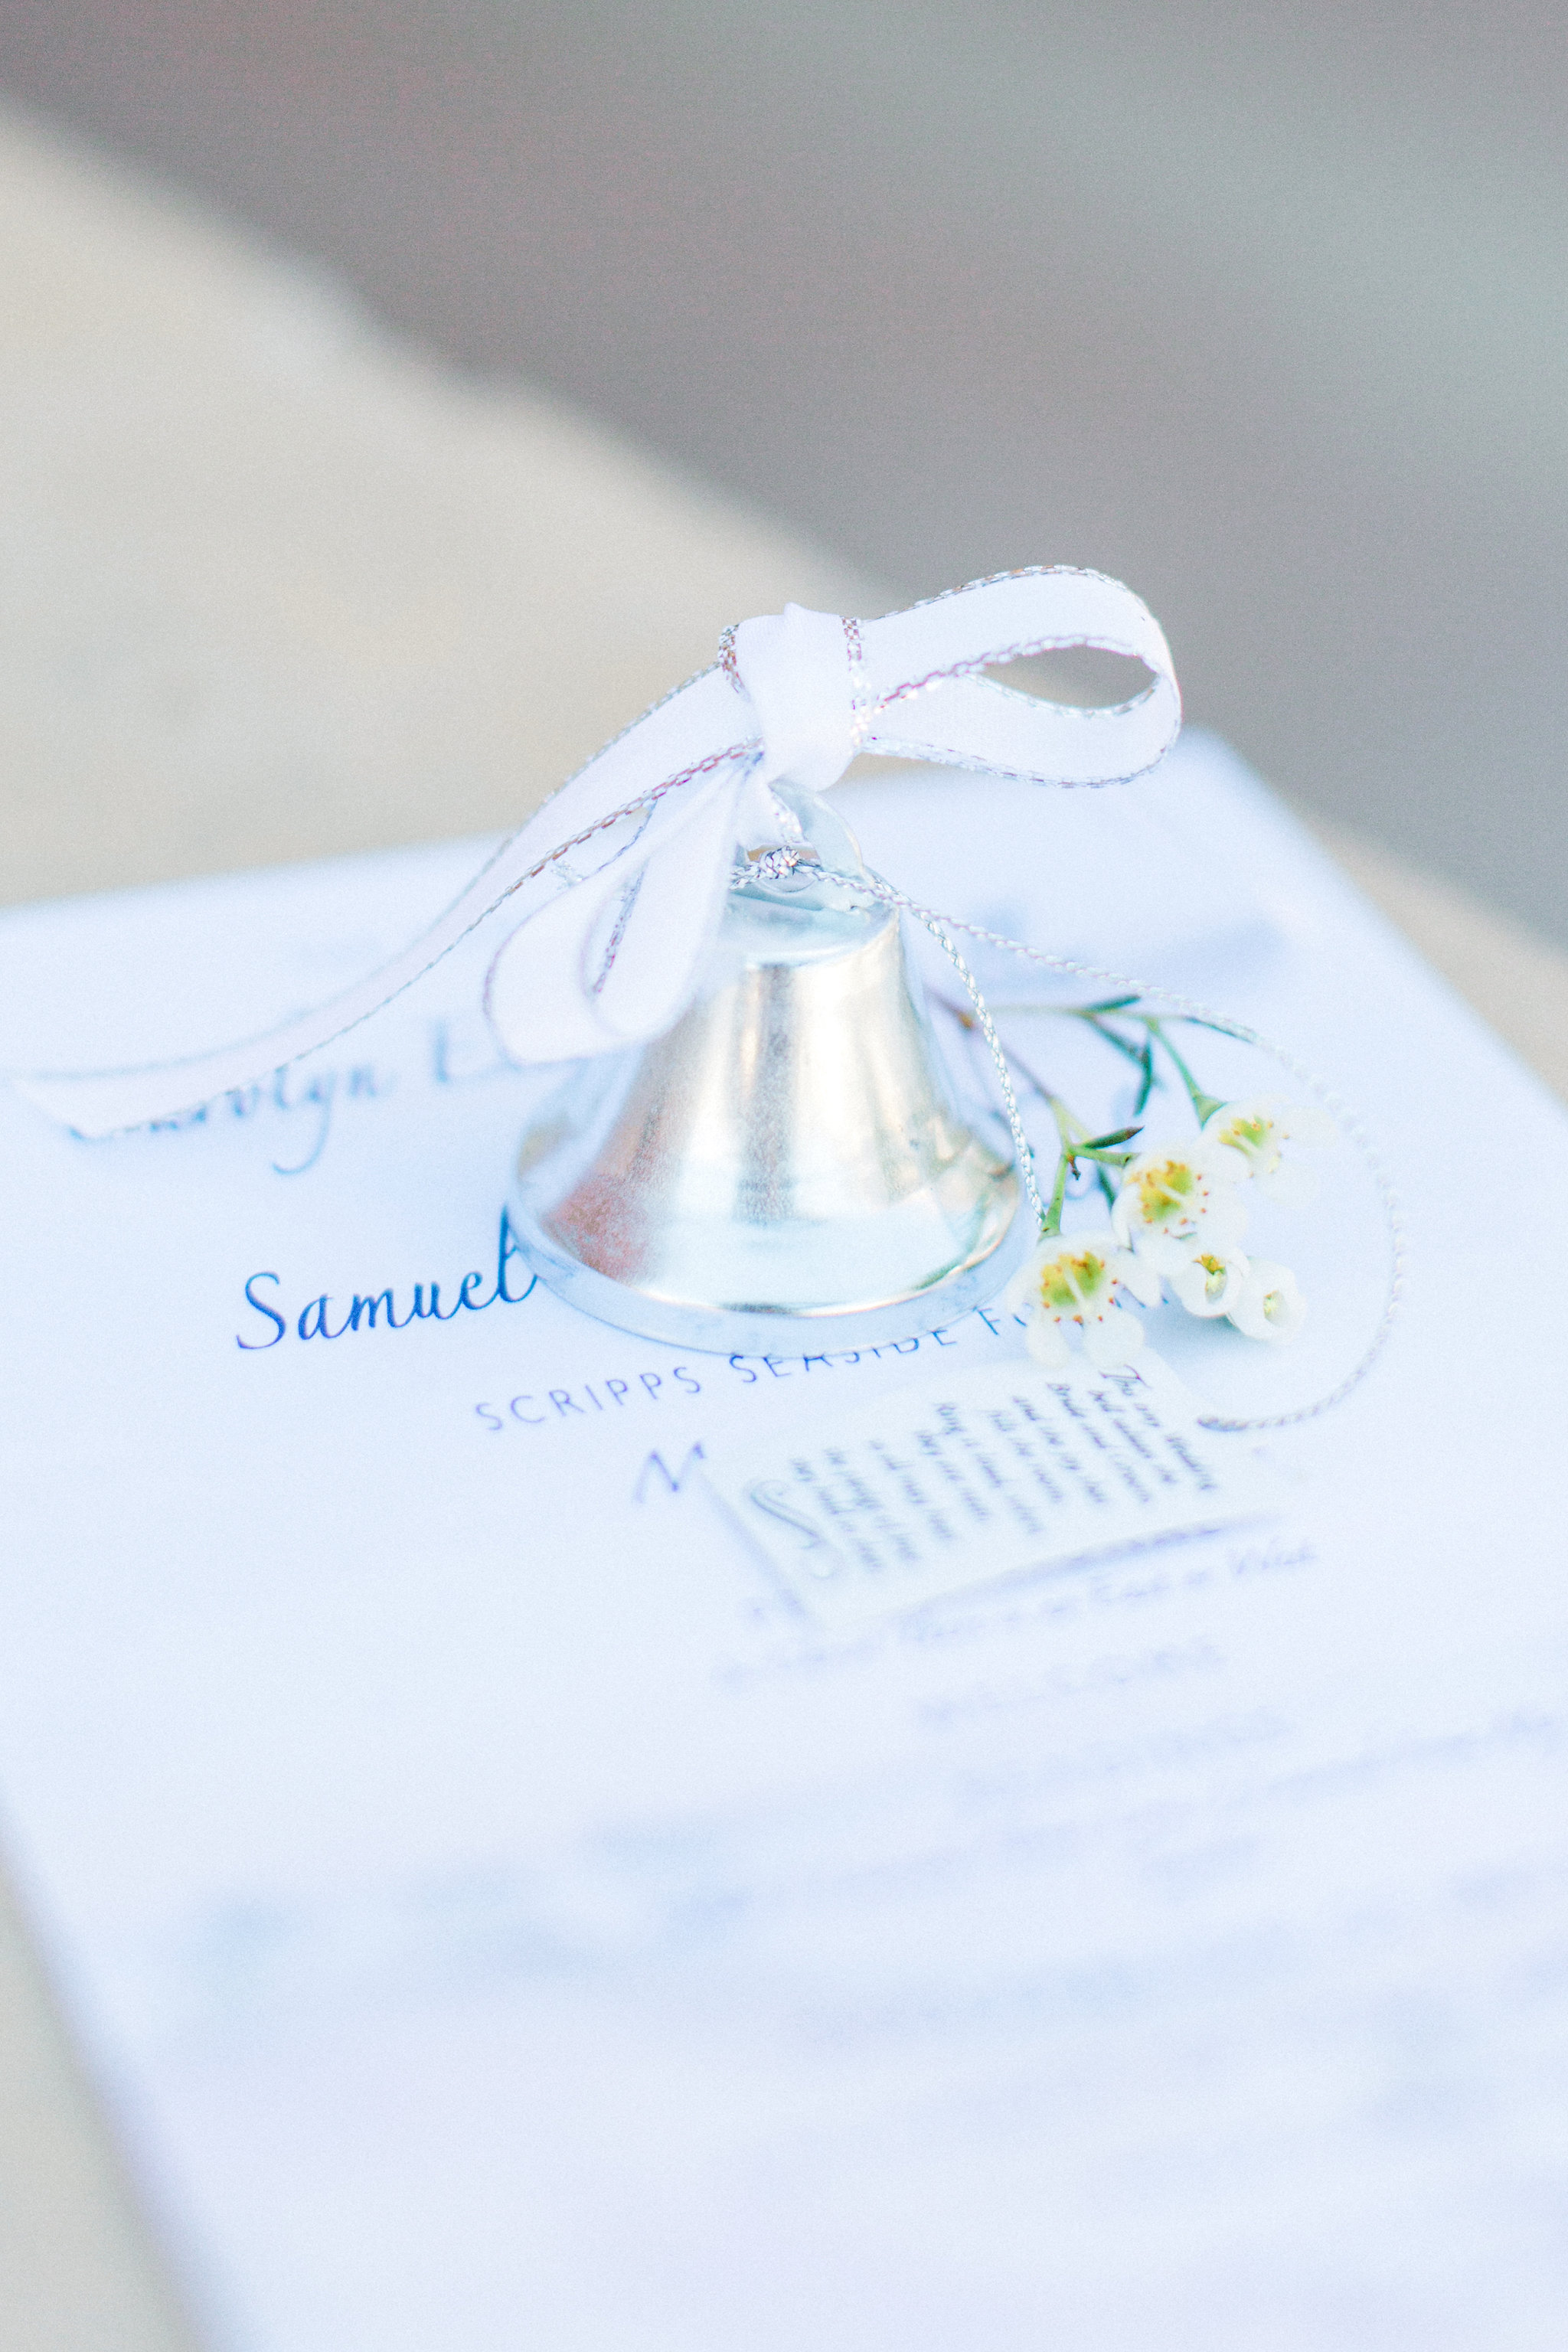 Scripps Seaside Pier Wedding Program in Watercolor, 2017. Photo by  Pauline Conway Photography .